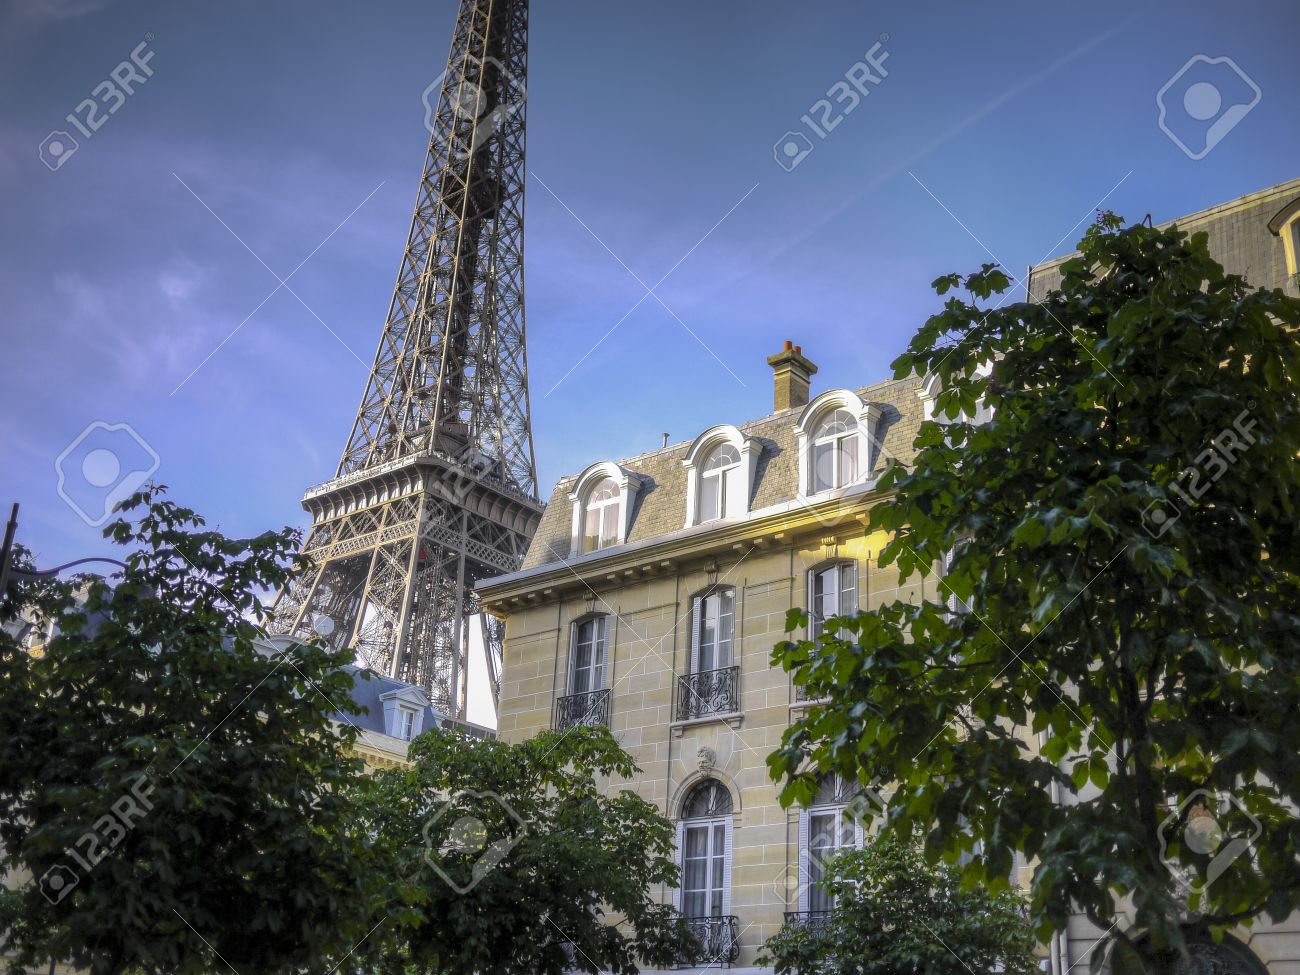 Dormers On An Apartment Buildings Near The Eiffel Tower, Paris, France  Stock Photo